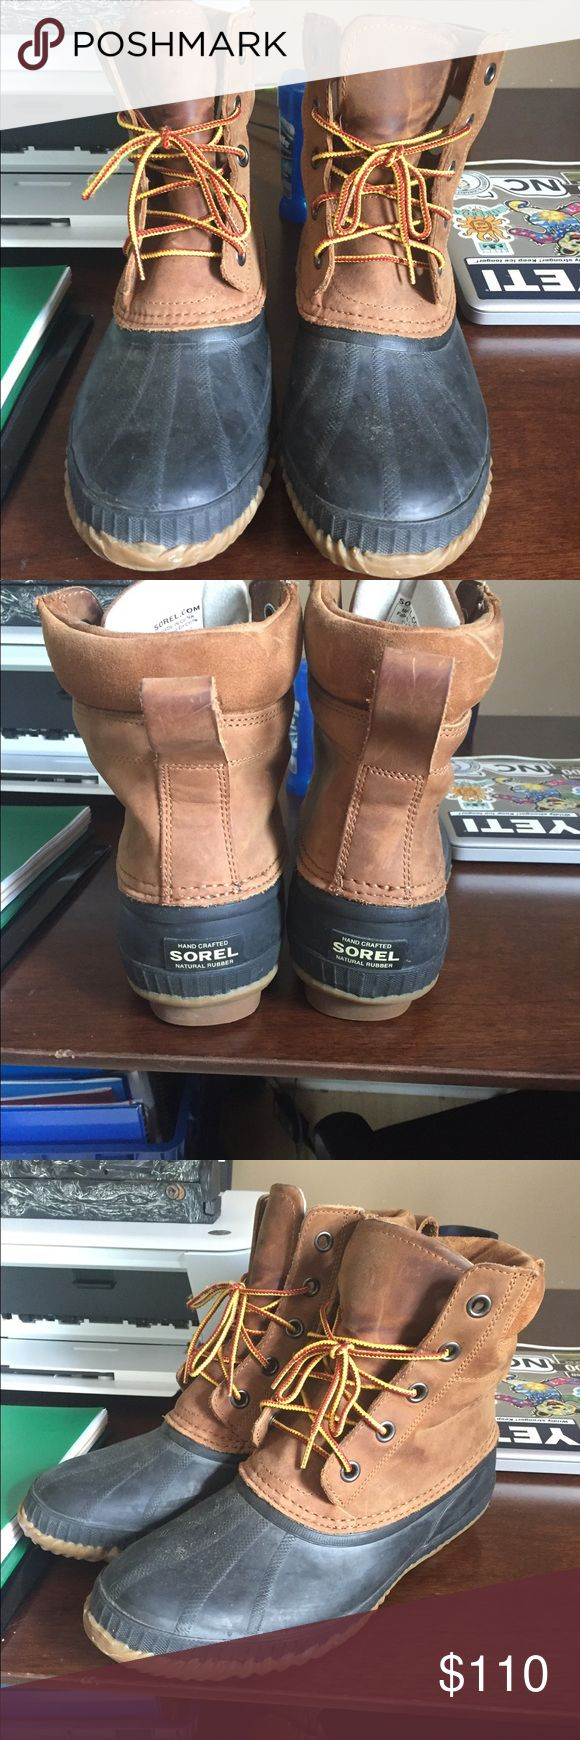 Men's Sorel duck boots Waterproof and insulated and in great condition. Only work twice Sorel Shoes Boots